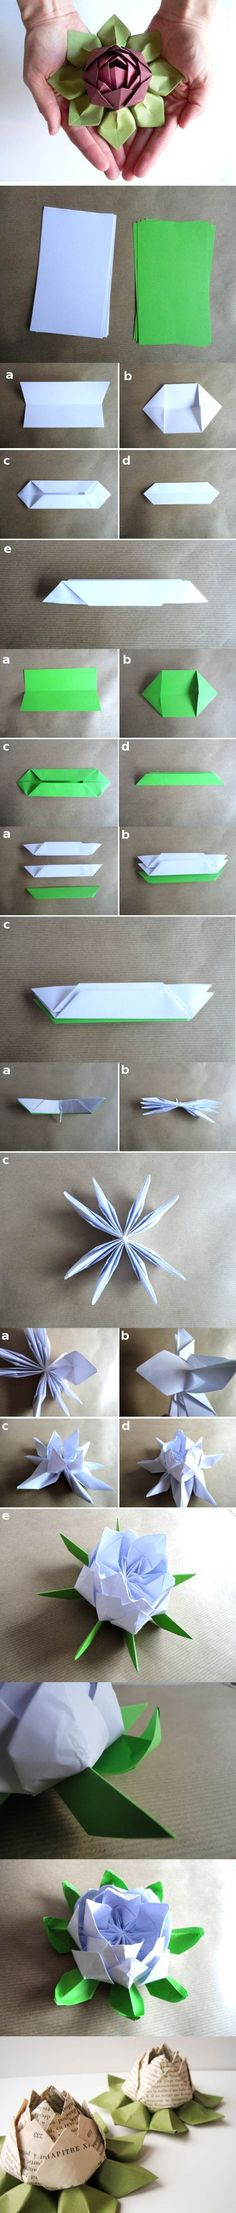 DIY Origami Lotus Flower | iCreativeIdeas.com Like Us on Facebook ==> https://www.facebook.com/icreativeideas (CE)